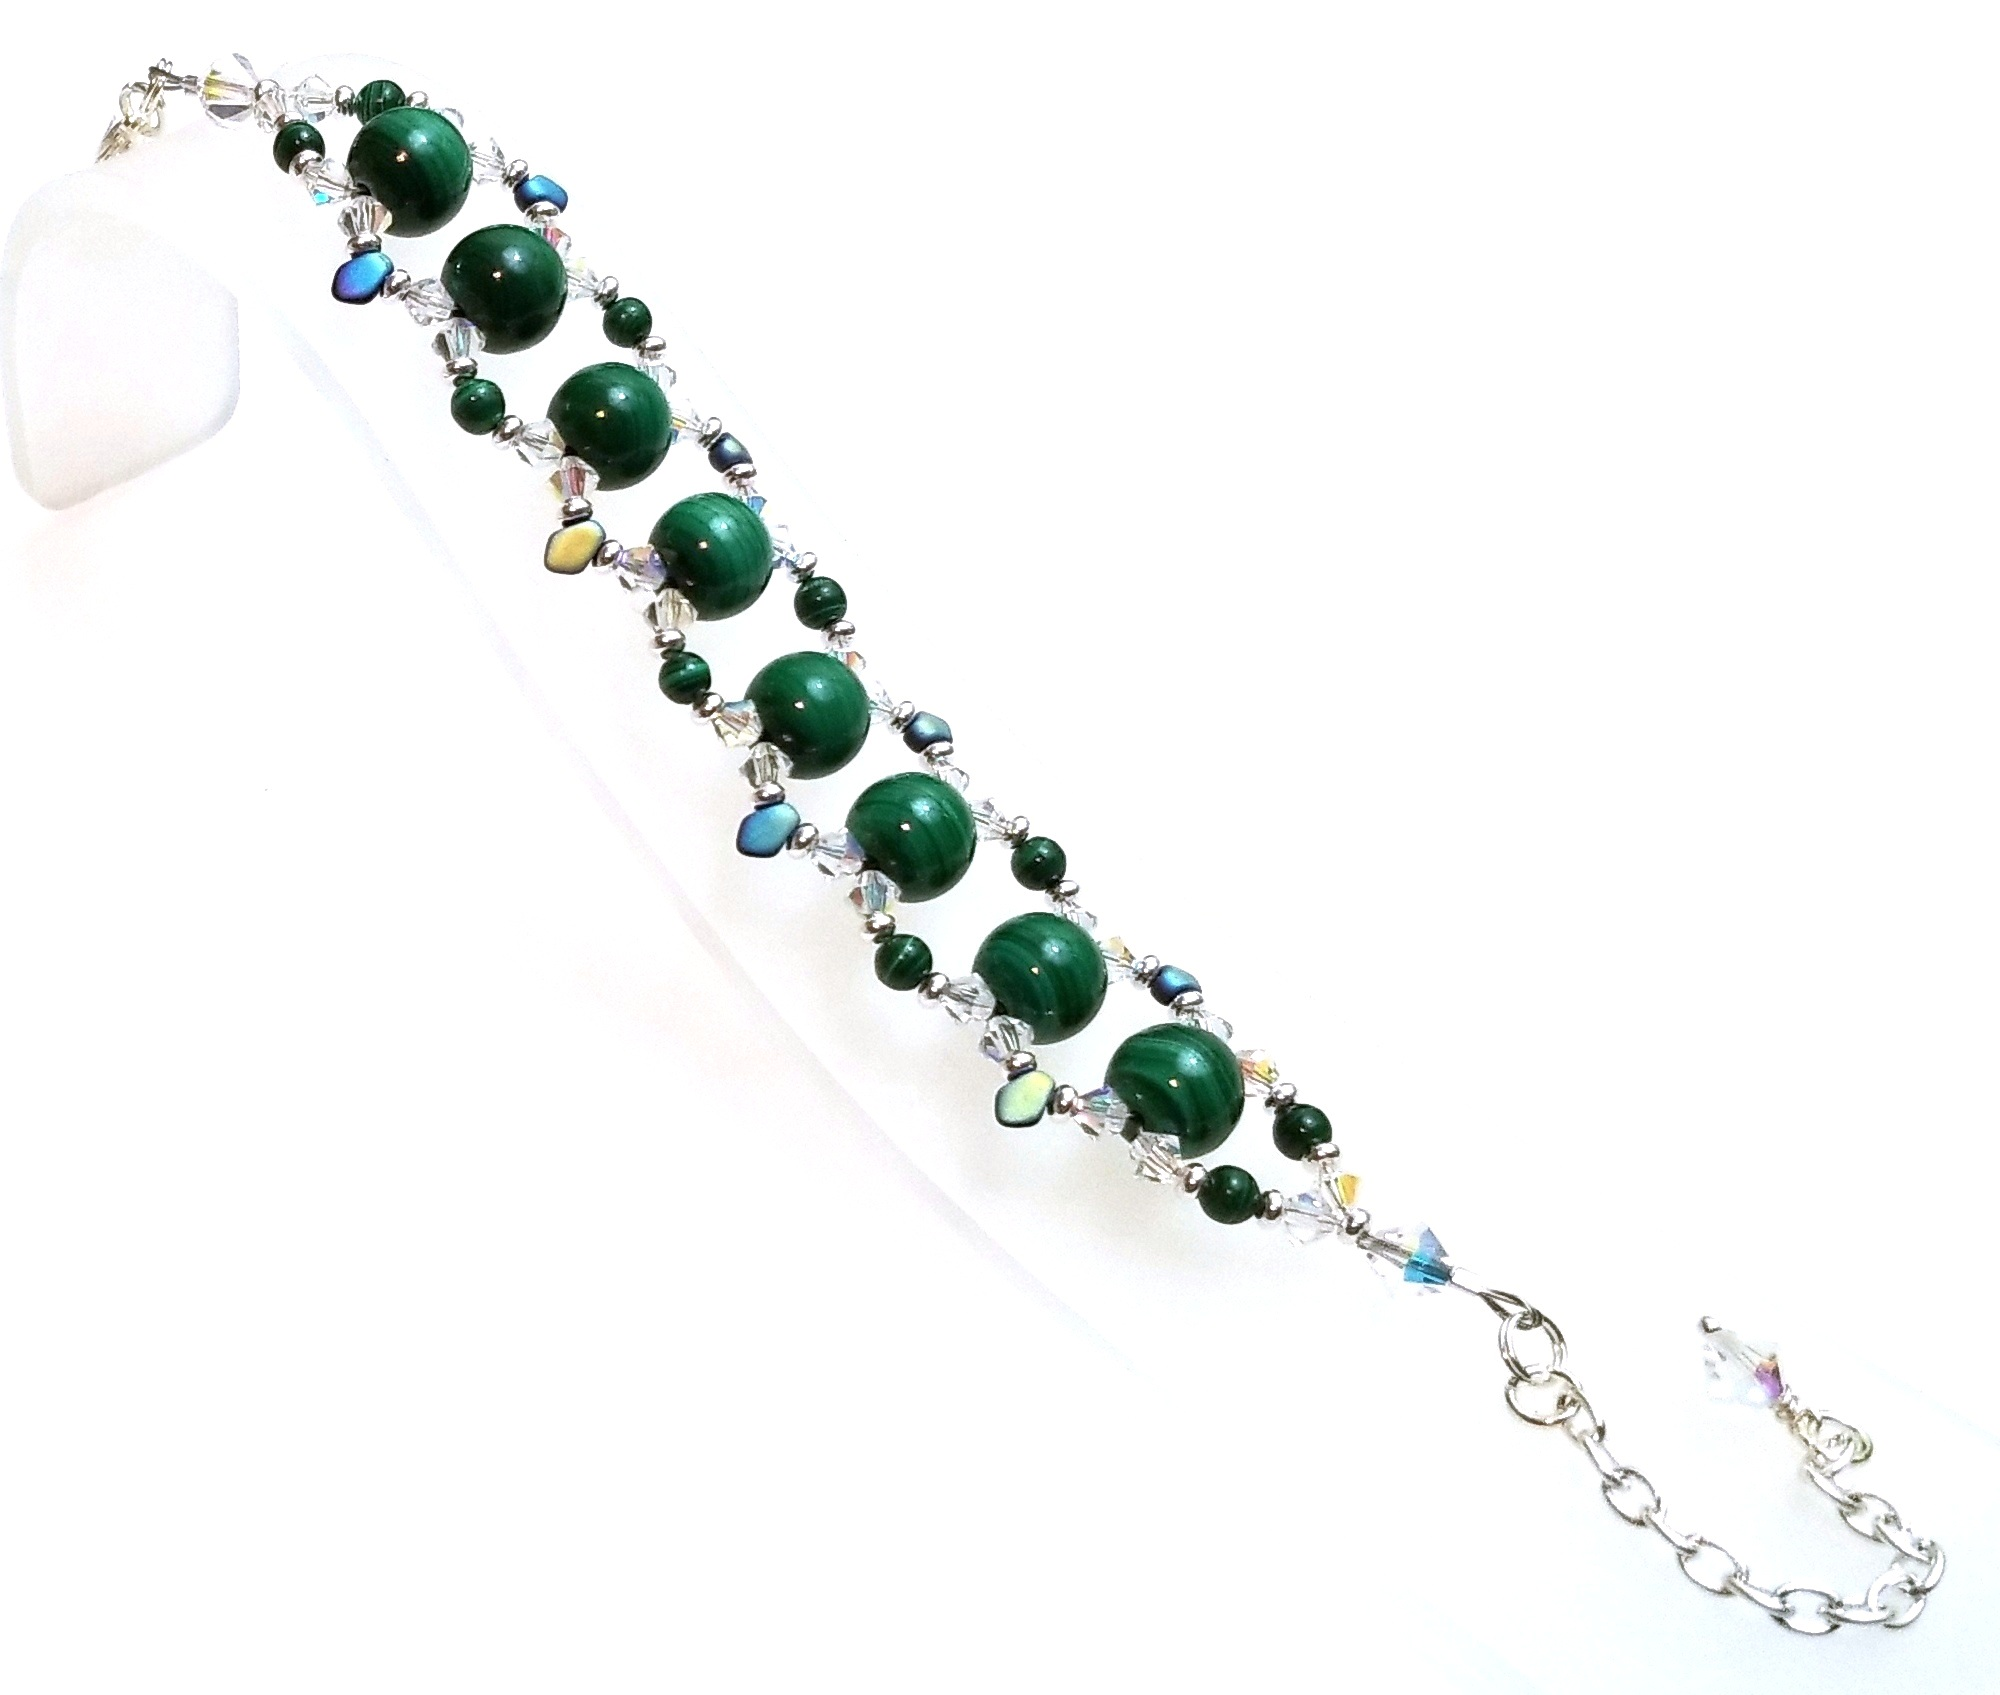 Malachite Bracelet Free Beaded Jewelry Making Pattern